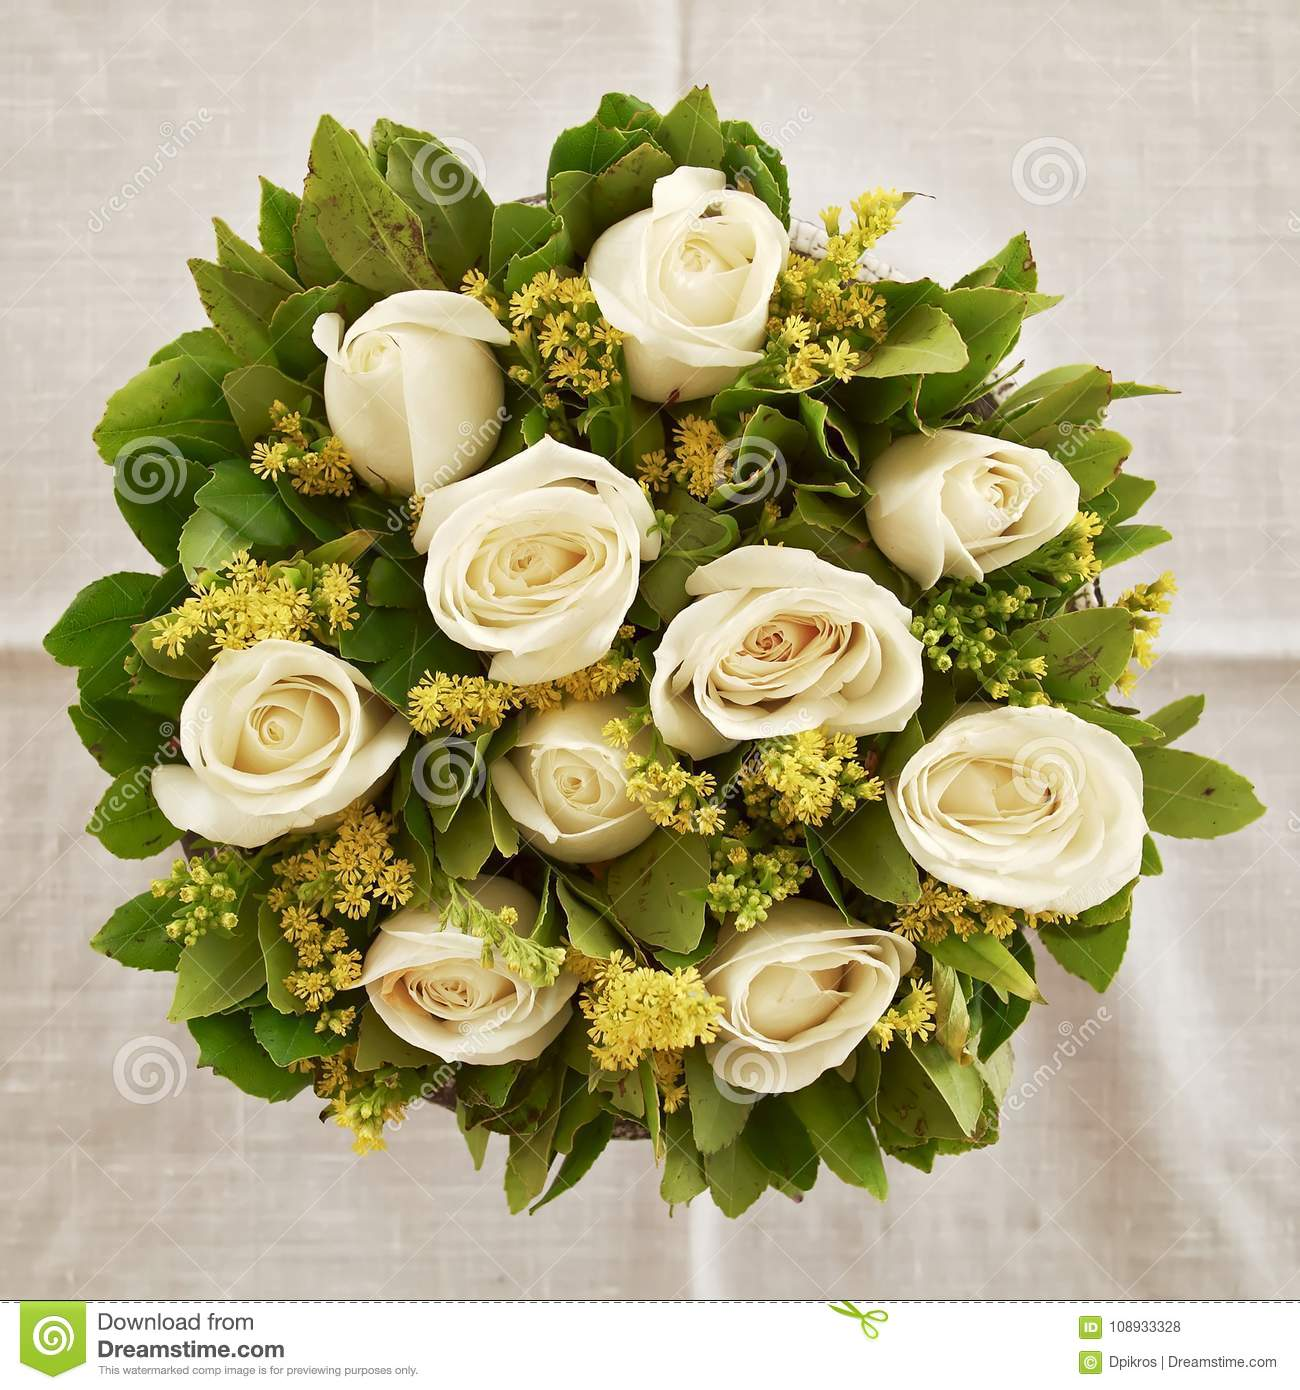 White Rose Flowers Bouquet Natural Background Stock Photo Image